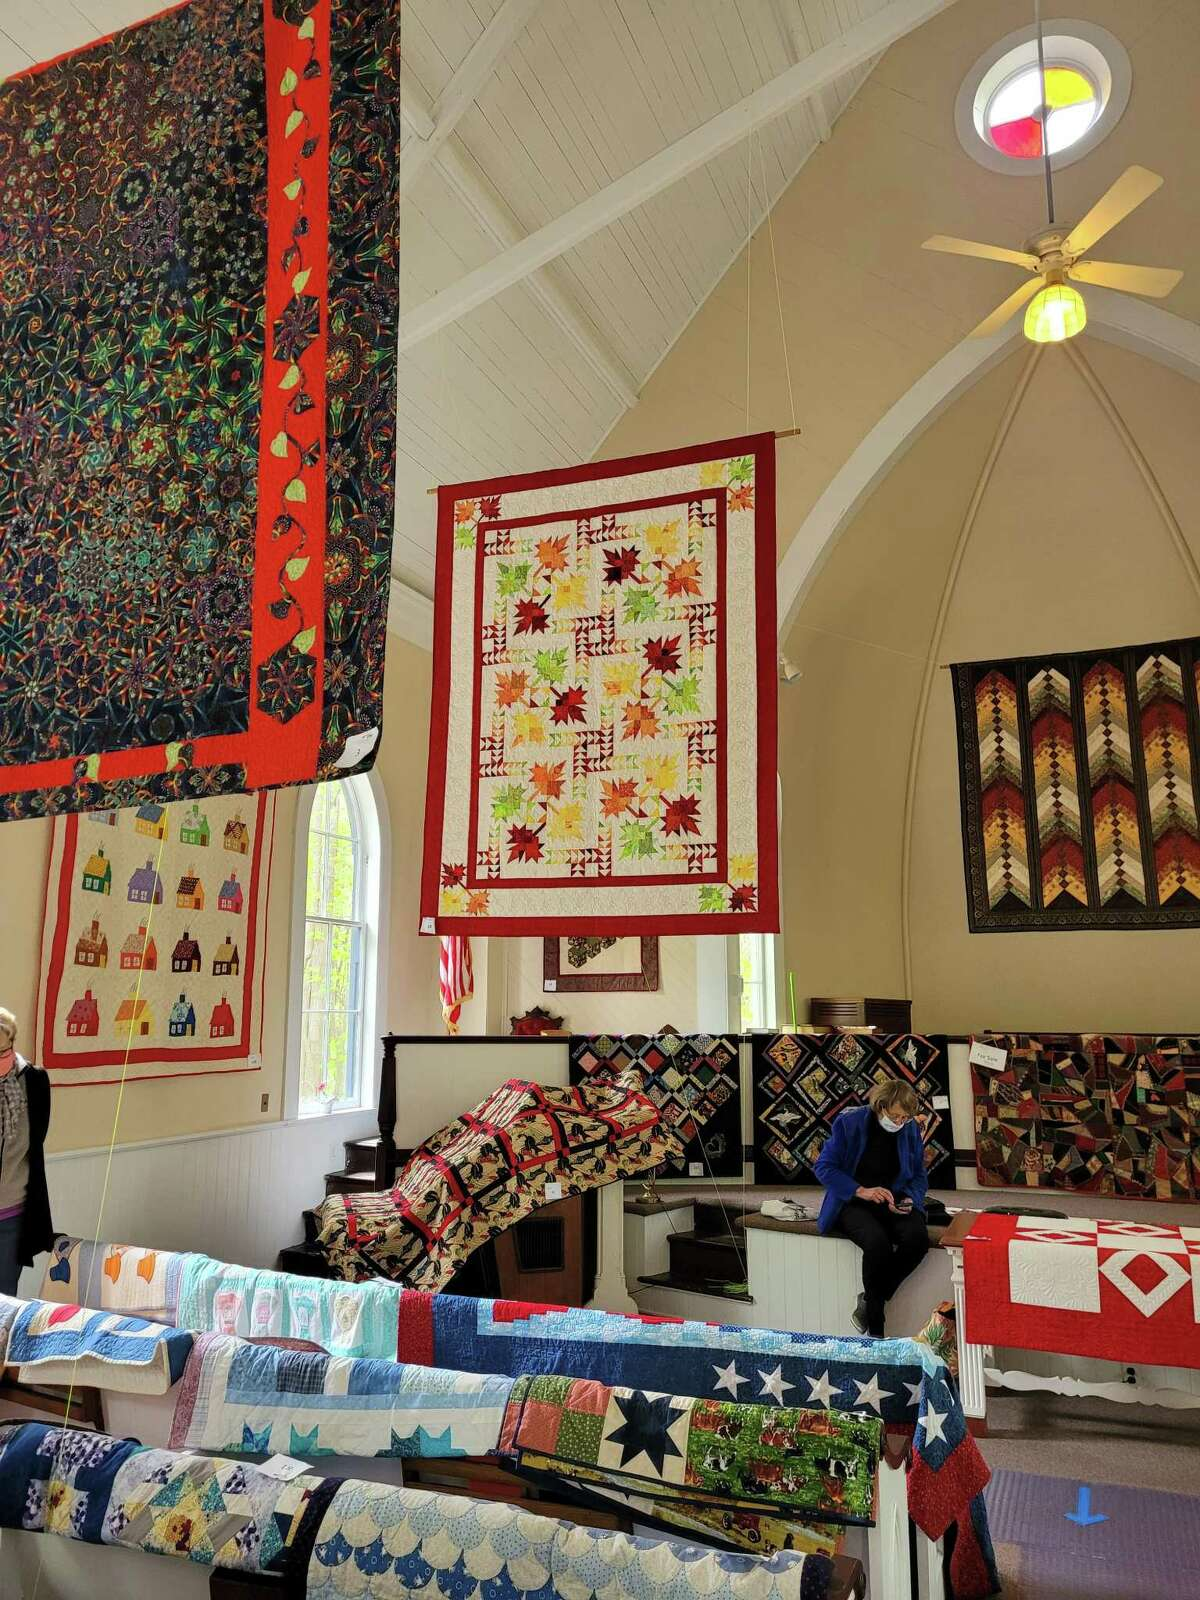 Haddam Neck Congregational Church held its 32nd Annual Quilt Show May 8-9. Quilts were displayed in the church sanctuary.